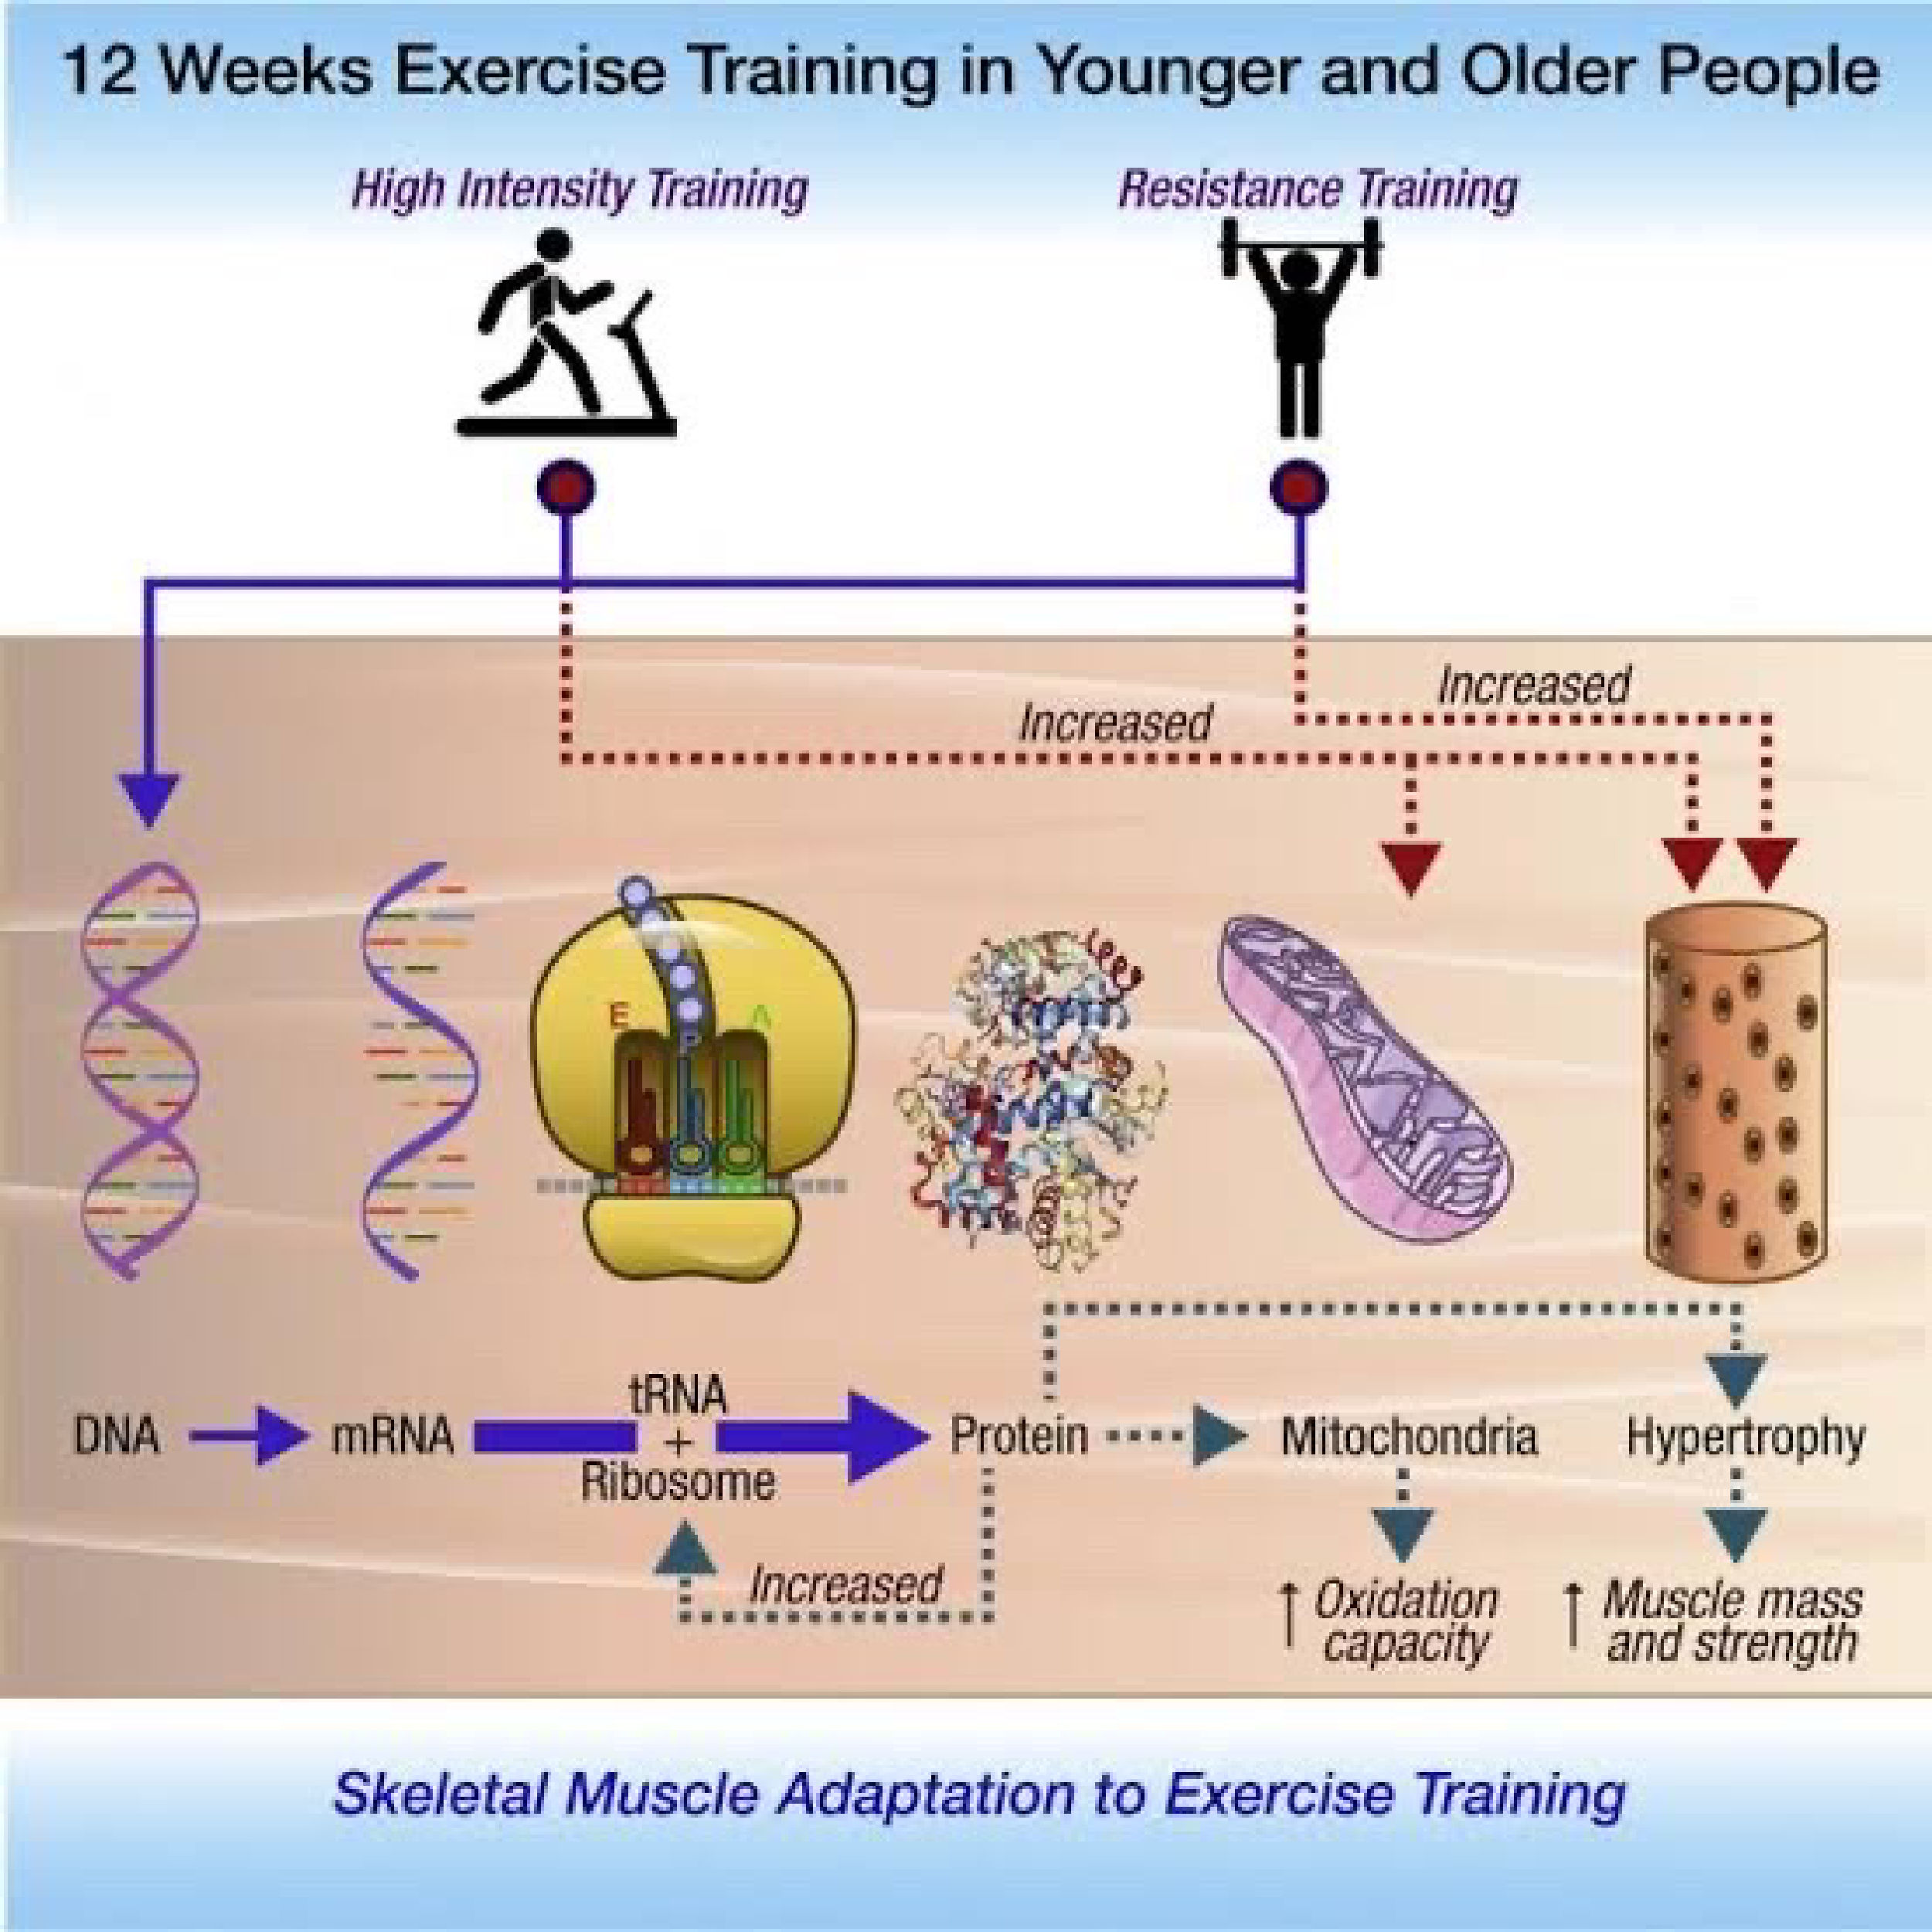 HIIT and impact on Mitochondria